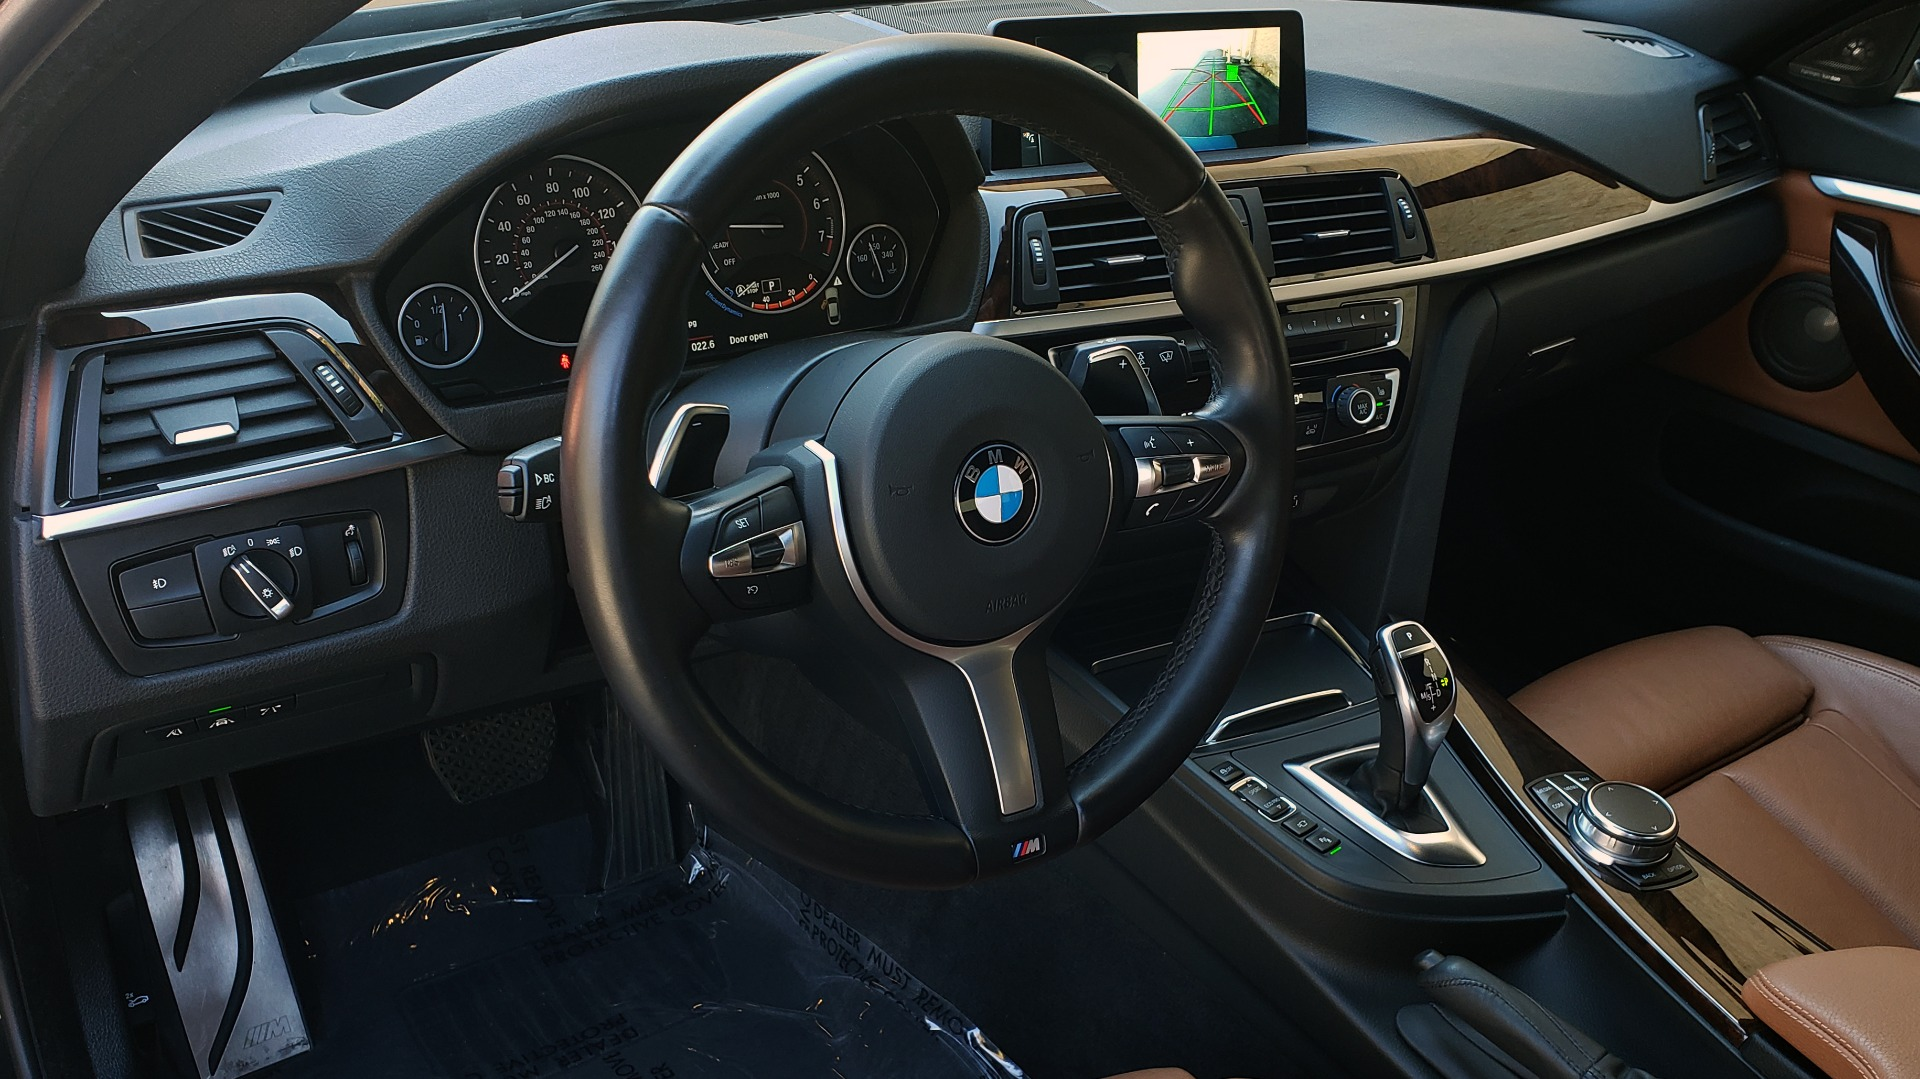 Used 2017 BMW 4 SERIES 440i XDRIVE M-SPORT / TECH / CLD WTHR / DRVR ASST PLUS / LIGHTING for sale Sold at Formula Imports in Charlotte NC 28227 39